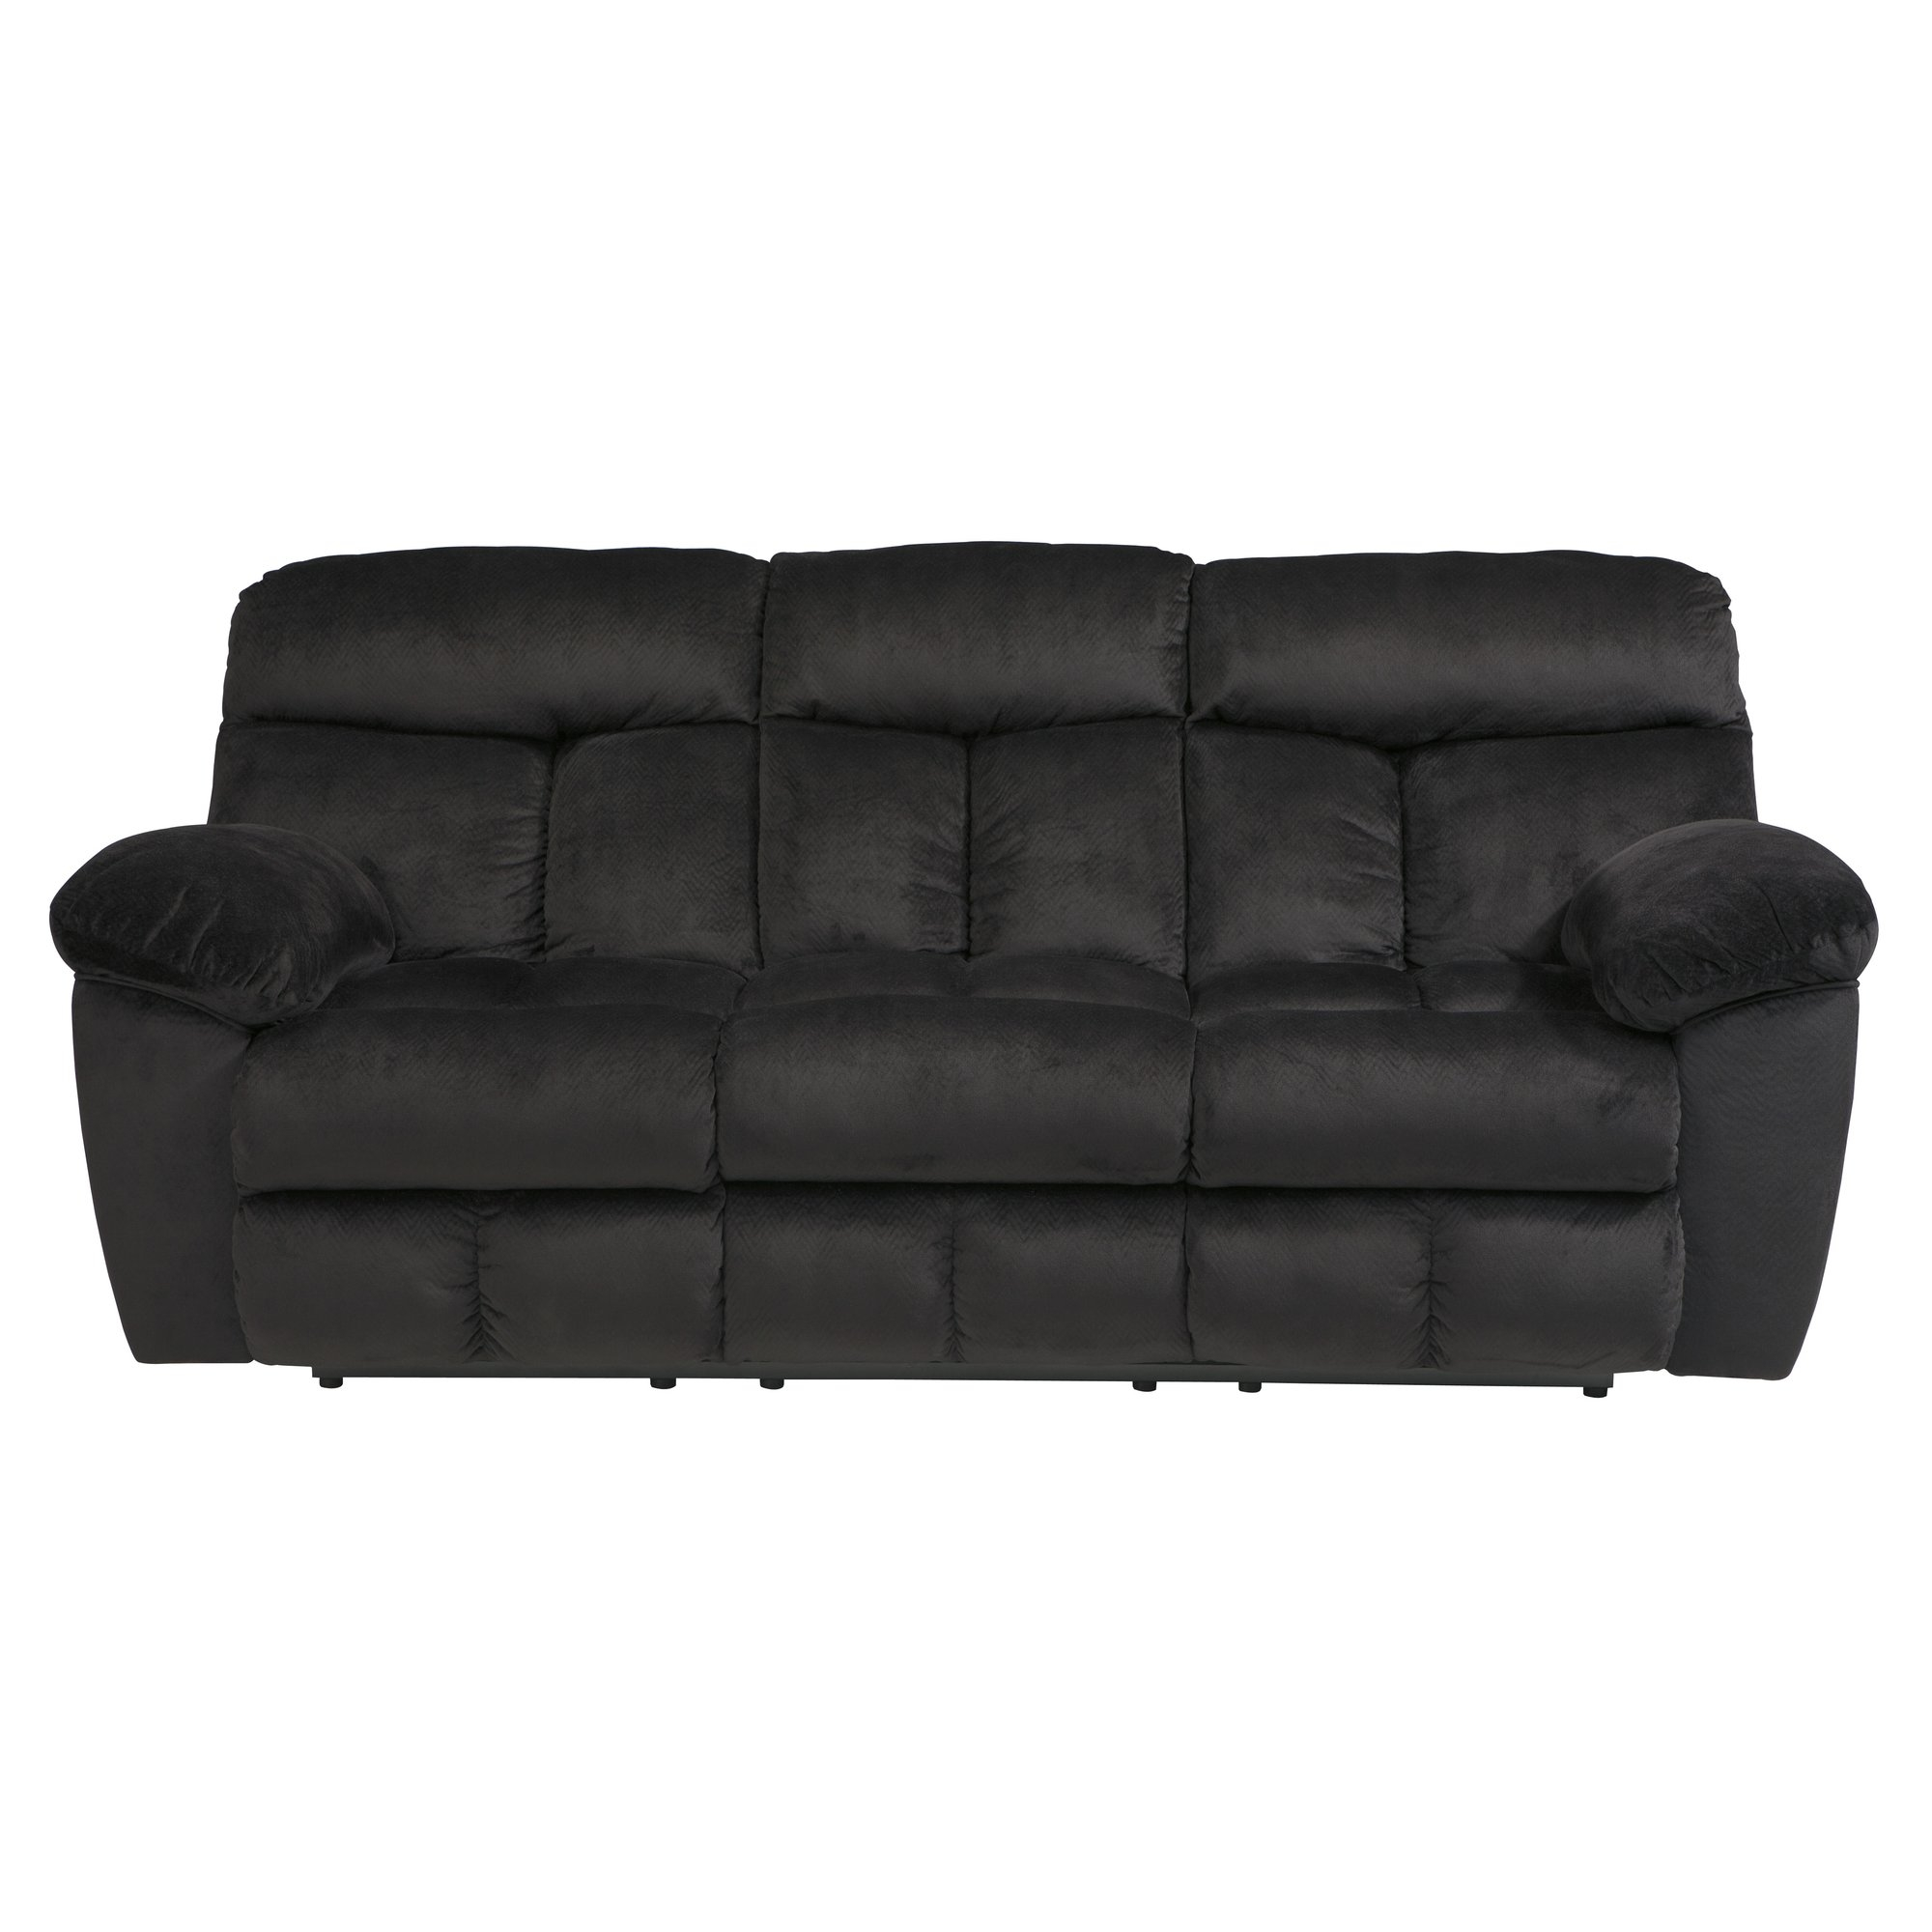 Signature Design Ashley Saul Reclining Sofa Reviews Wayfair With Ashley Tufted Sofa (Image 13 of 15)